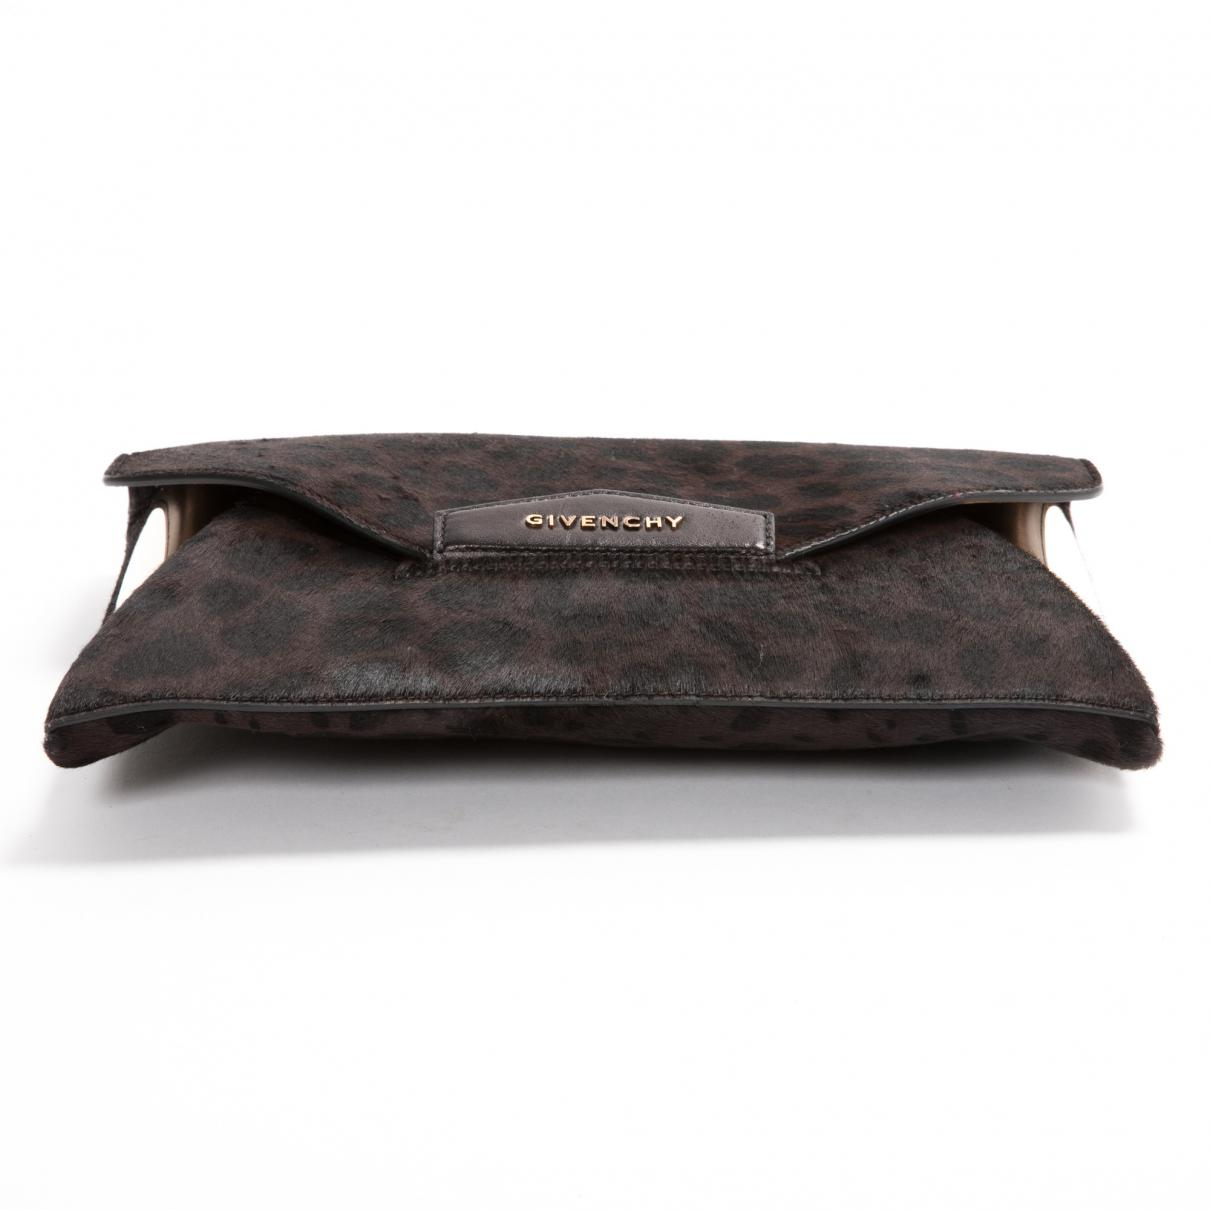 Lyst - Givenchy Brown Pony-style Calfskin Clutch Bag in Brown eed6254b81f25